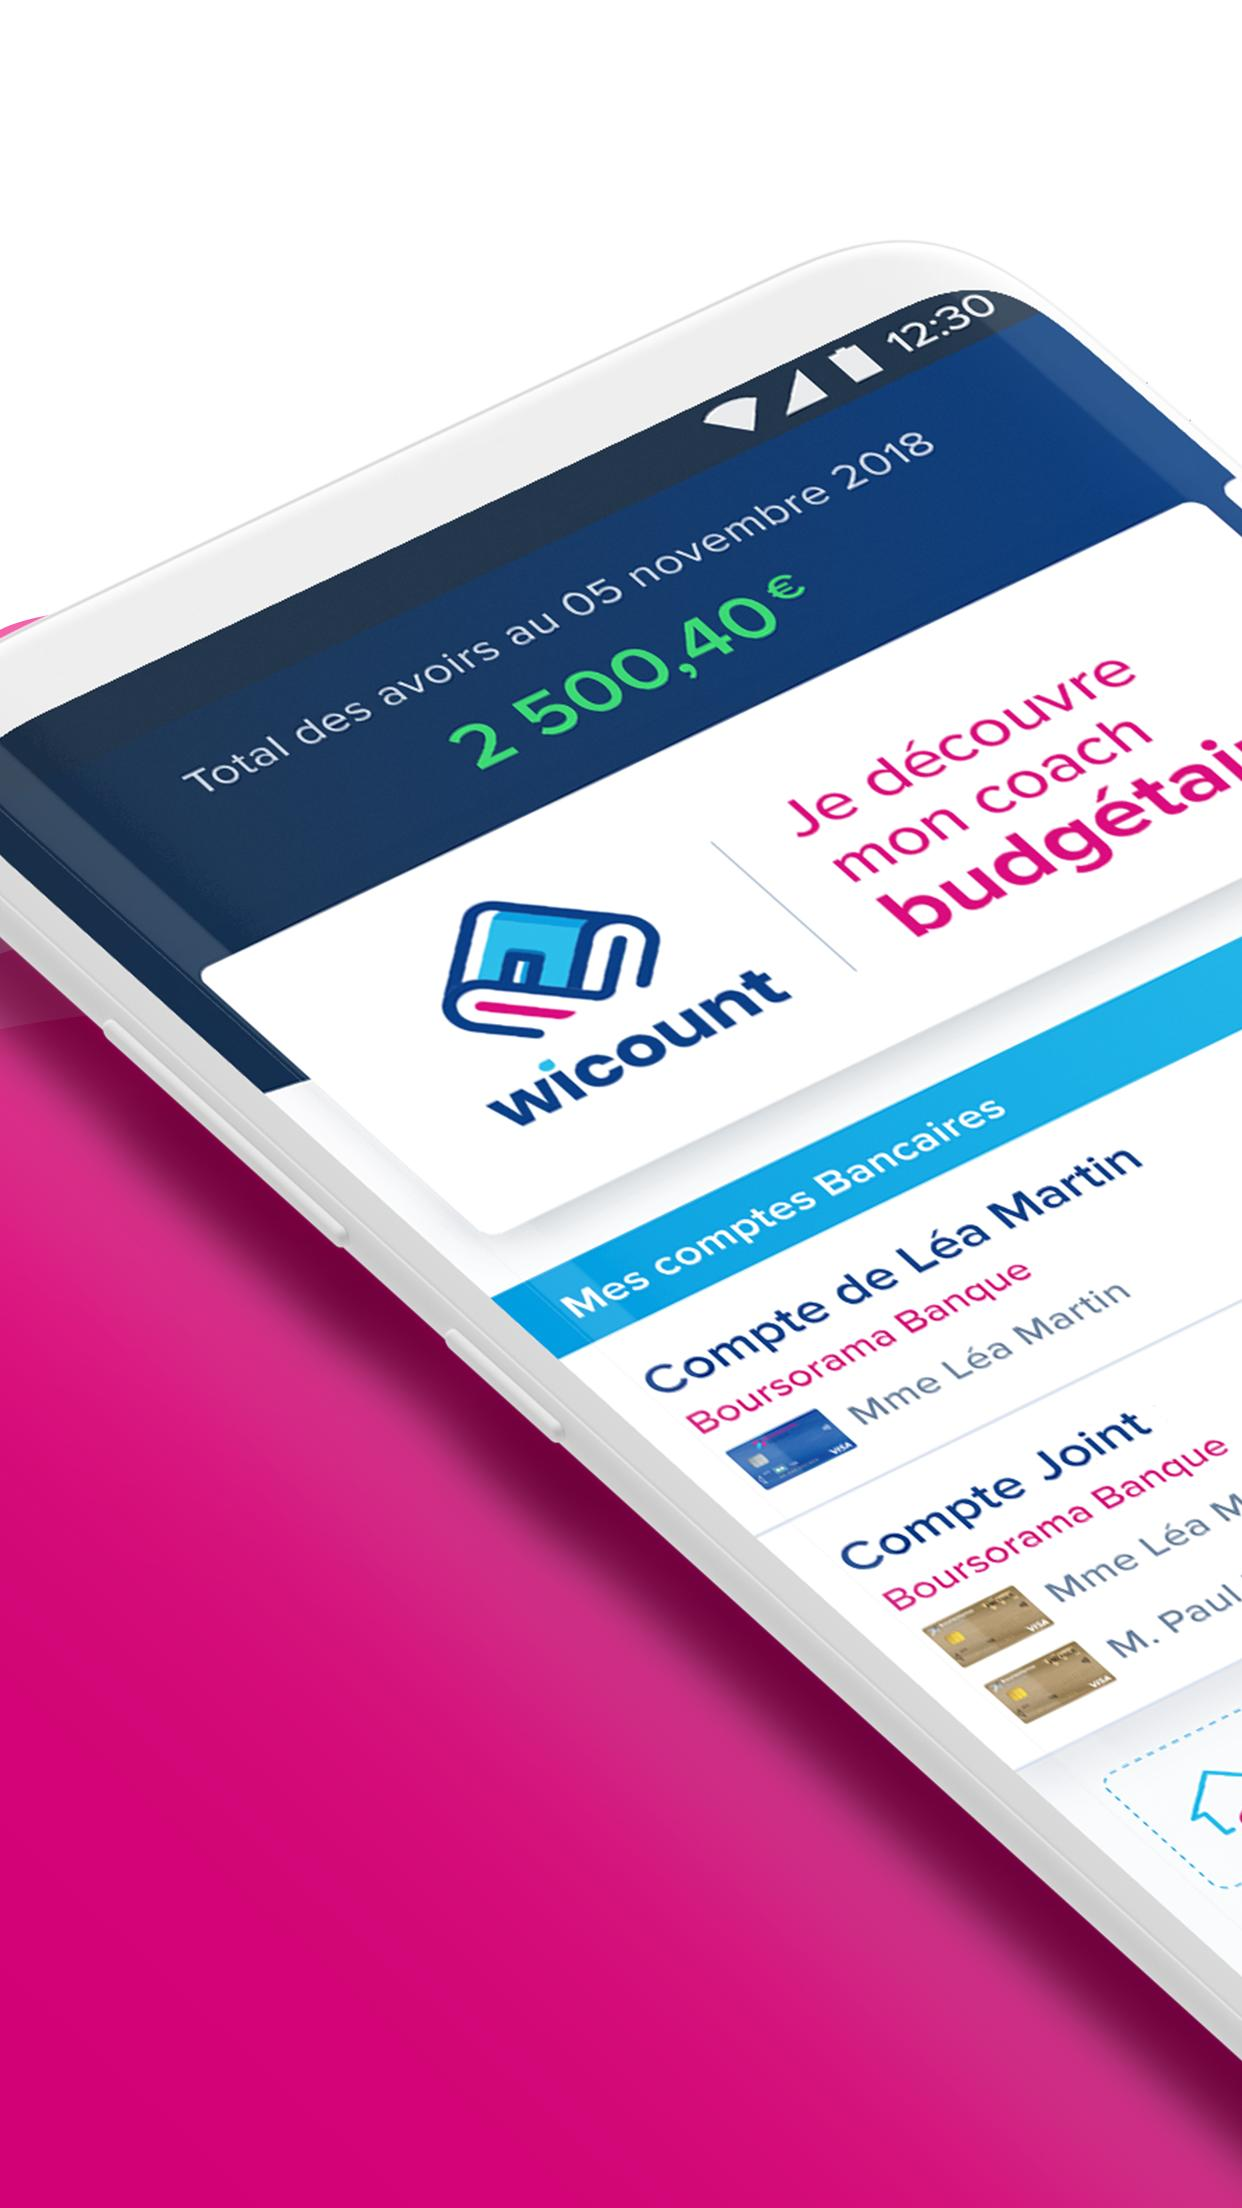 Boursorama Banque for Android - APK Download